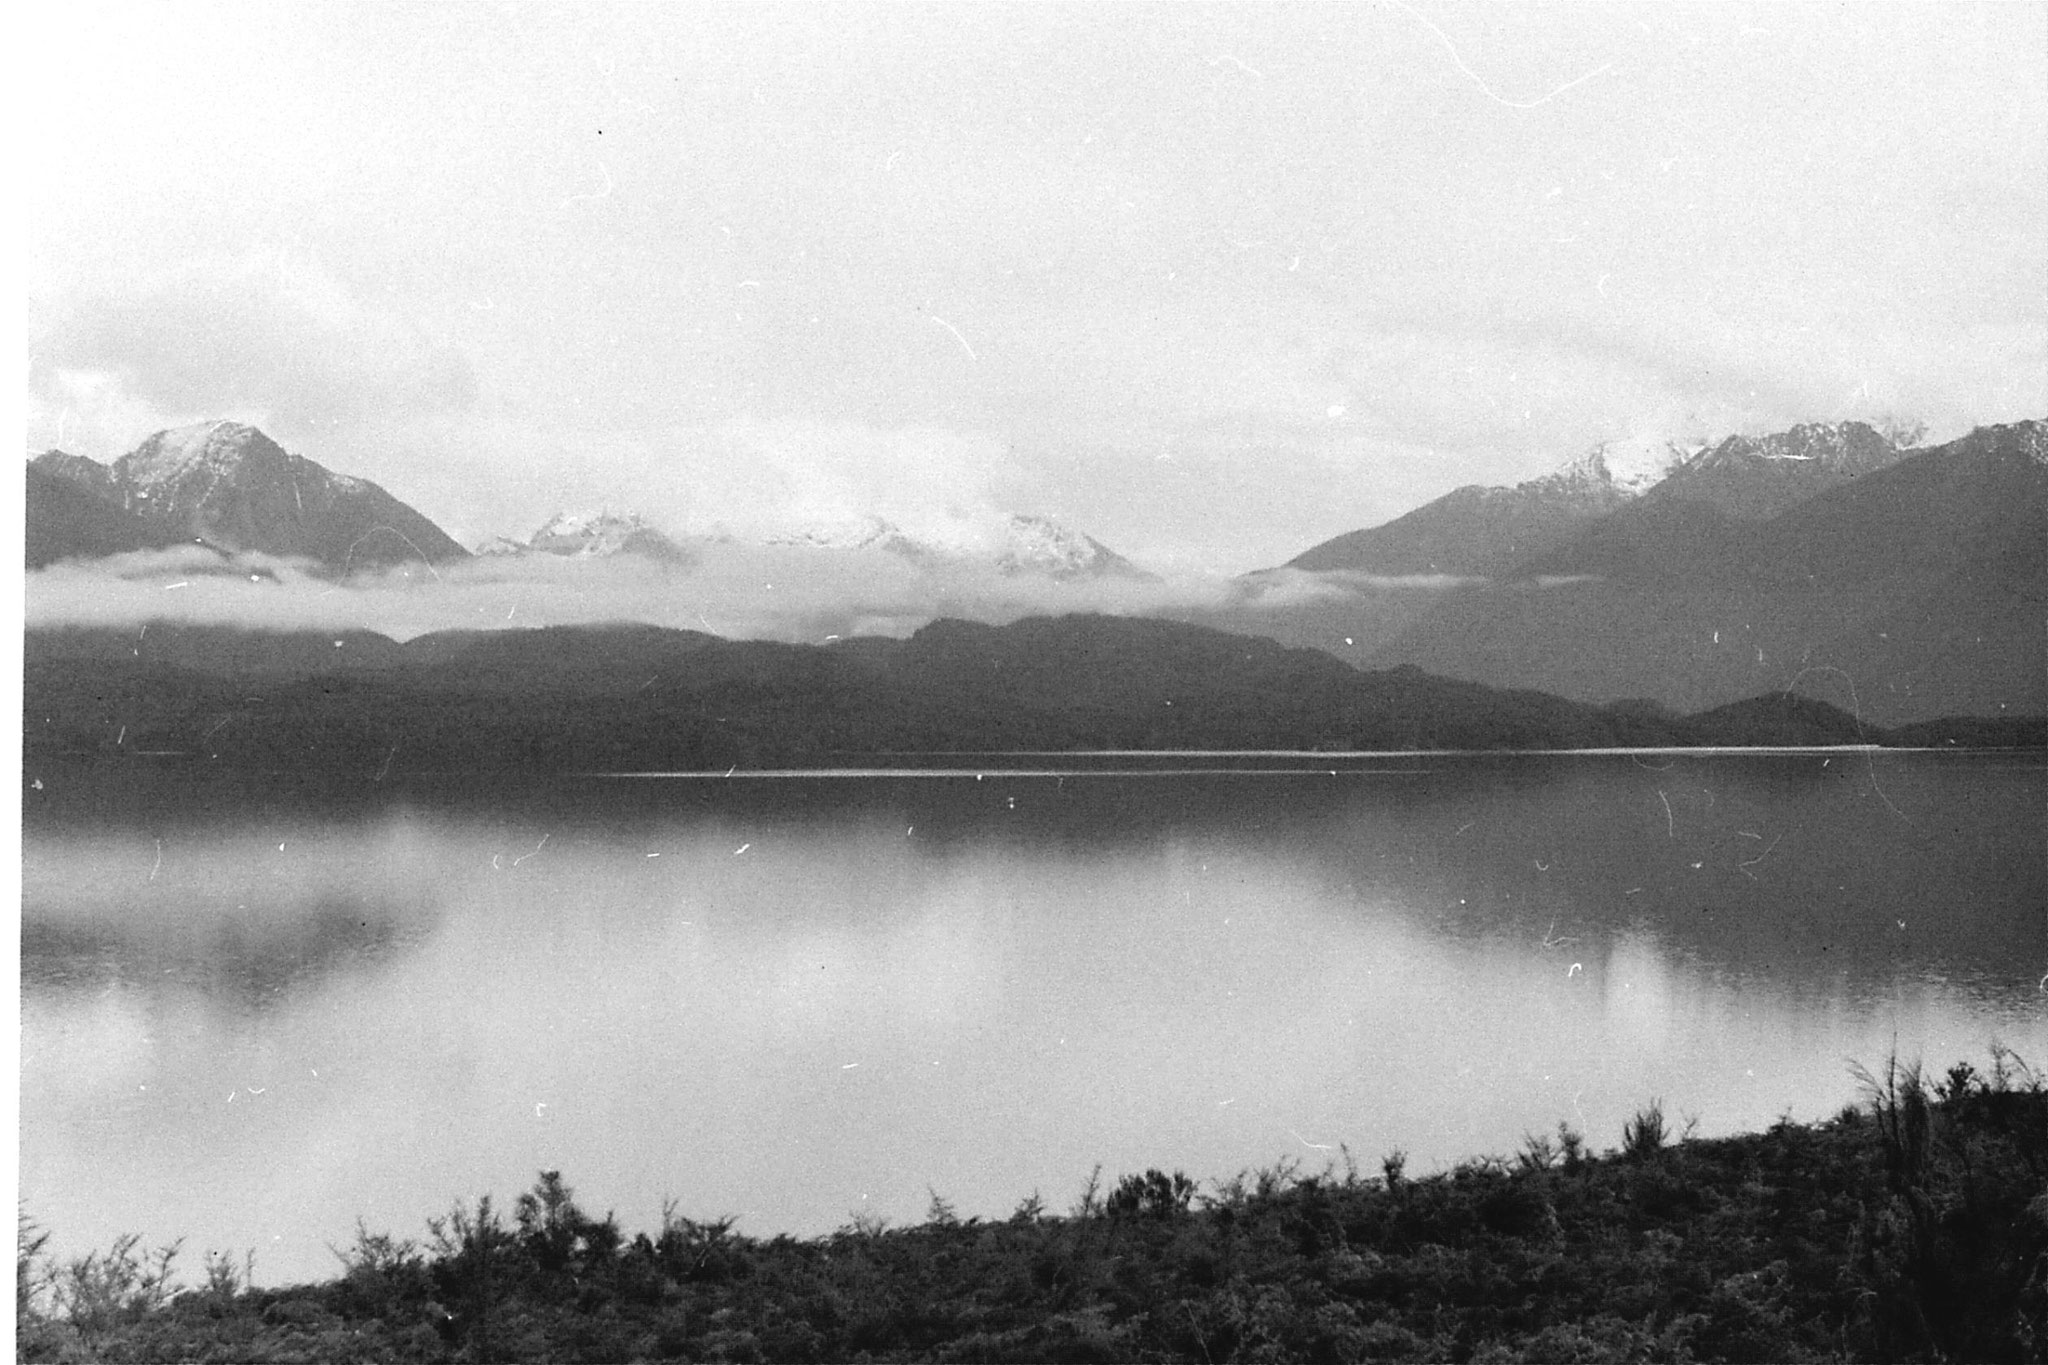 14/8/1990: 11: Murchison Mts from Te Anau across Te Anau Lake